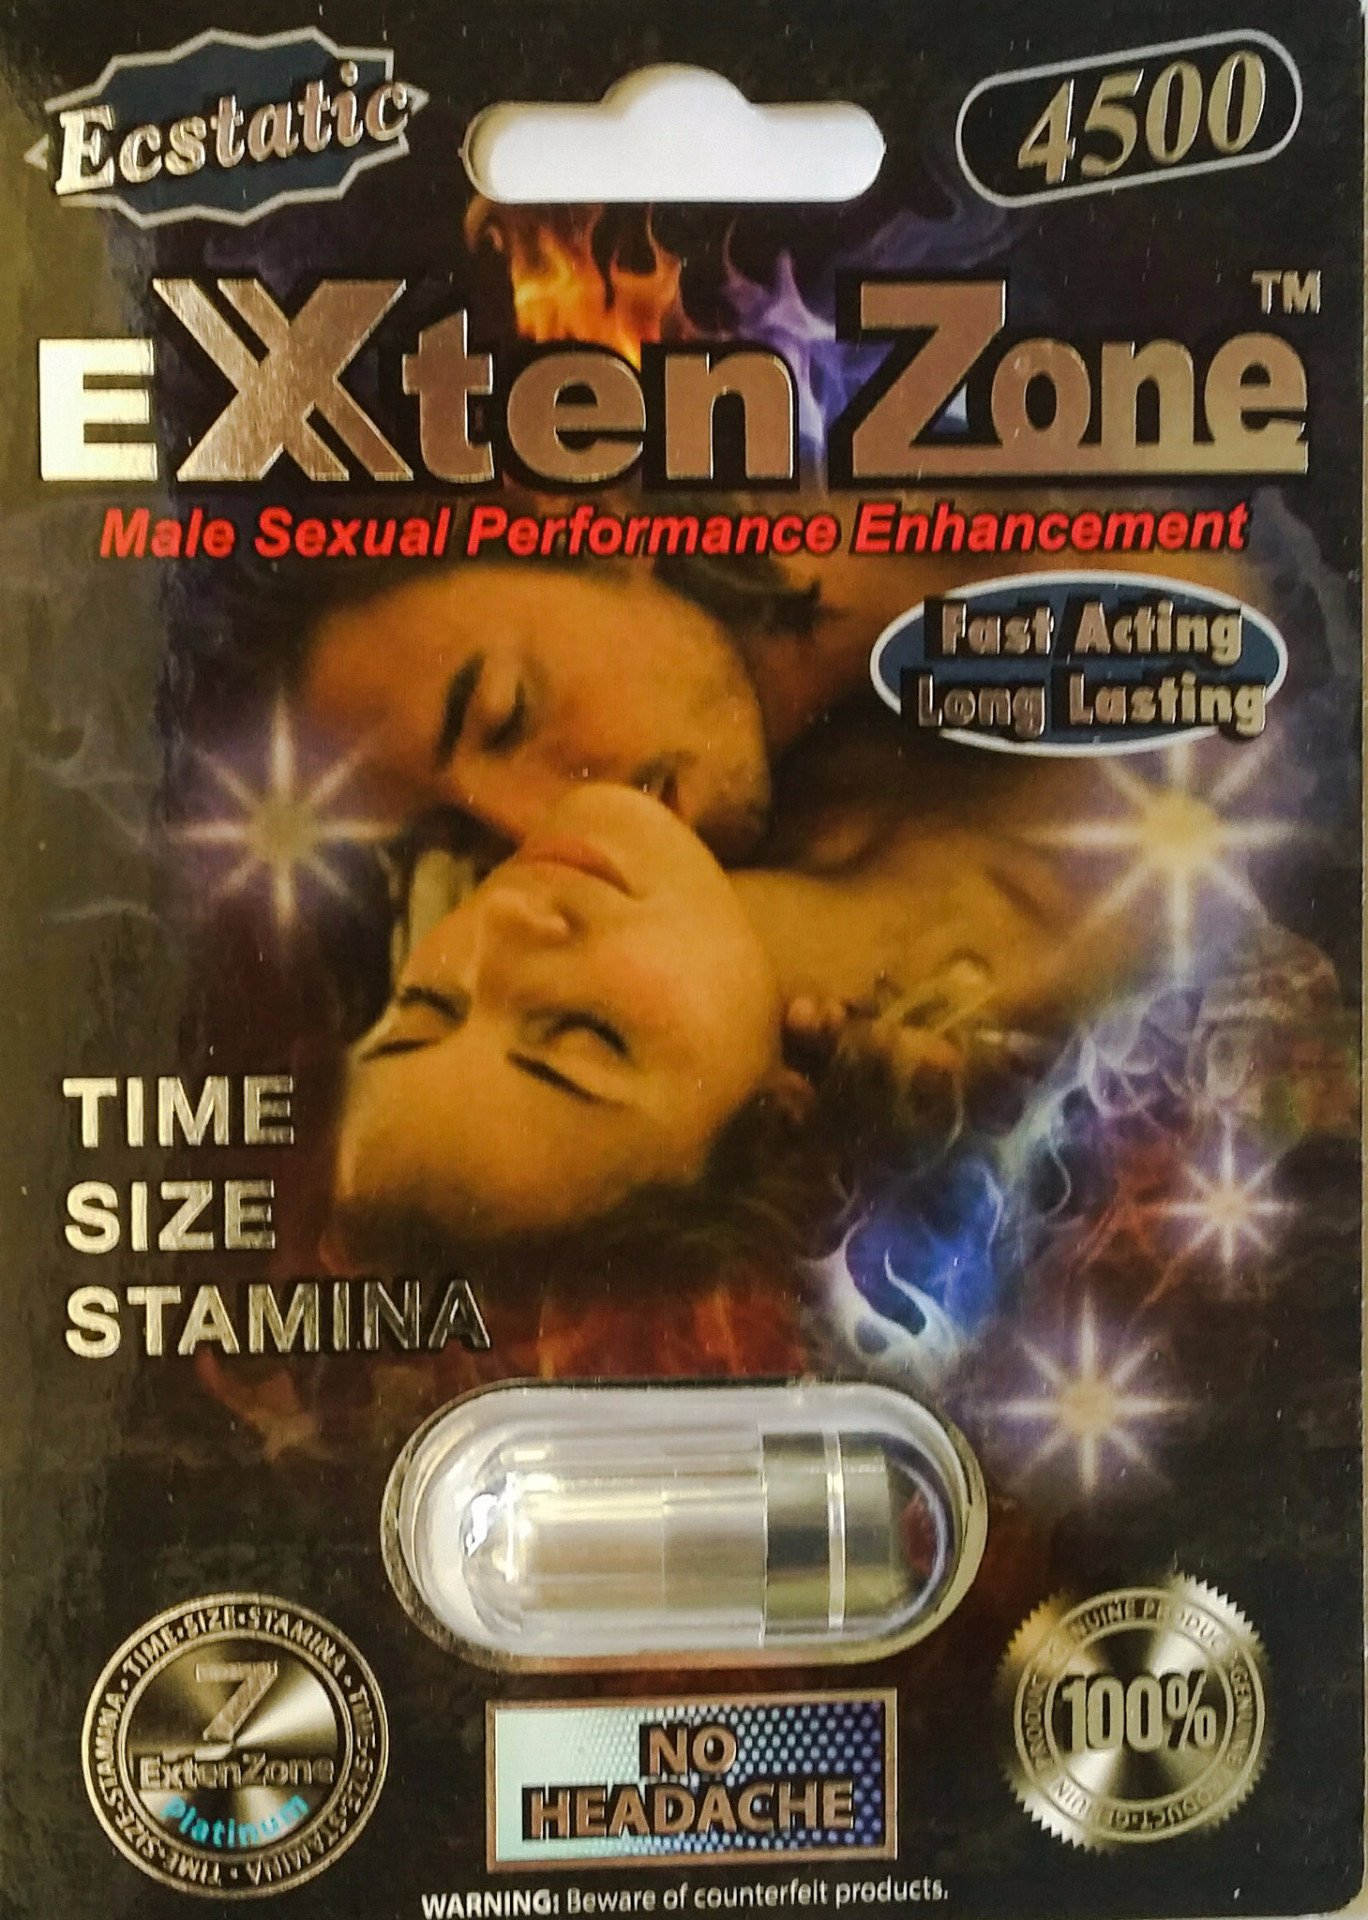 Exten Zone Ecstatic Platinum 4500 Male Sexual Enhancement